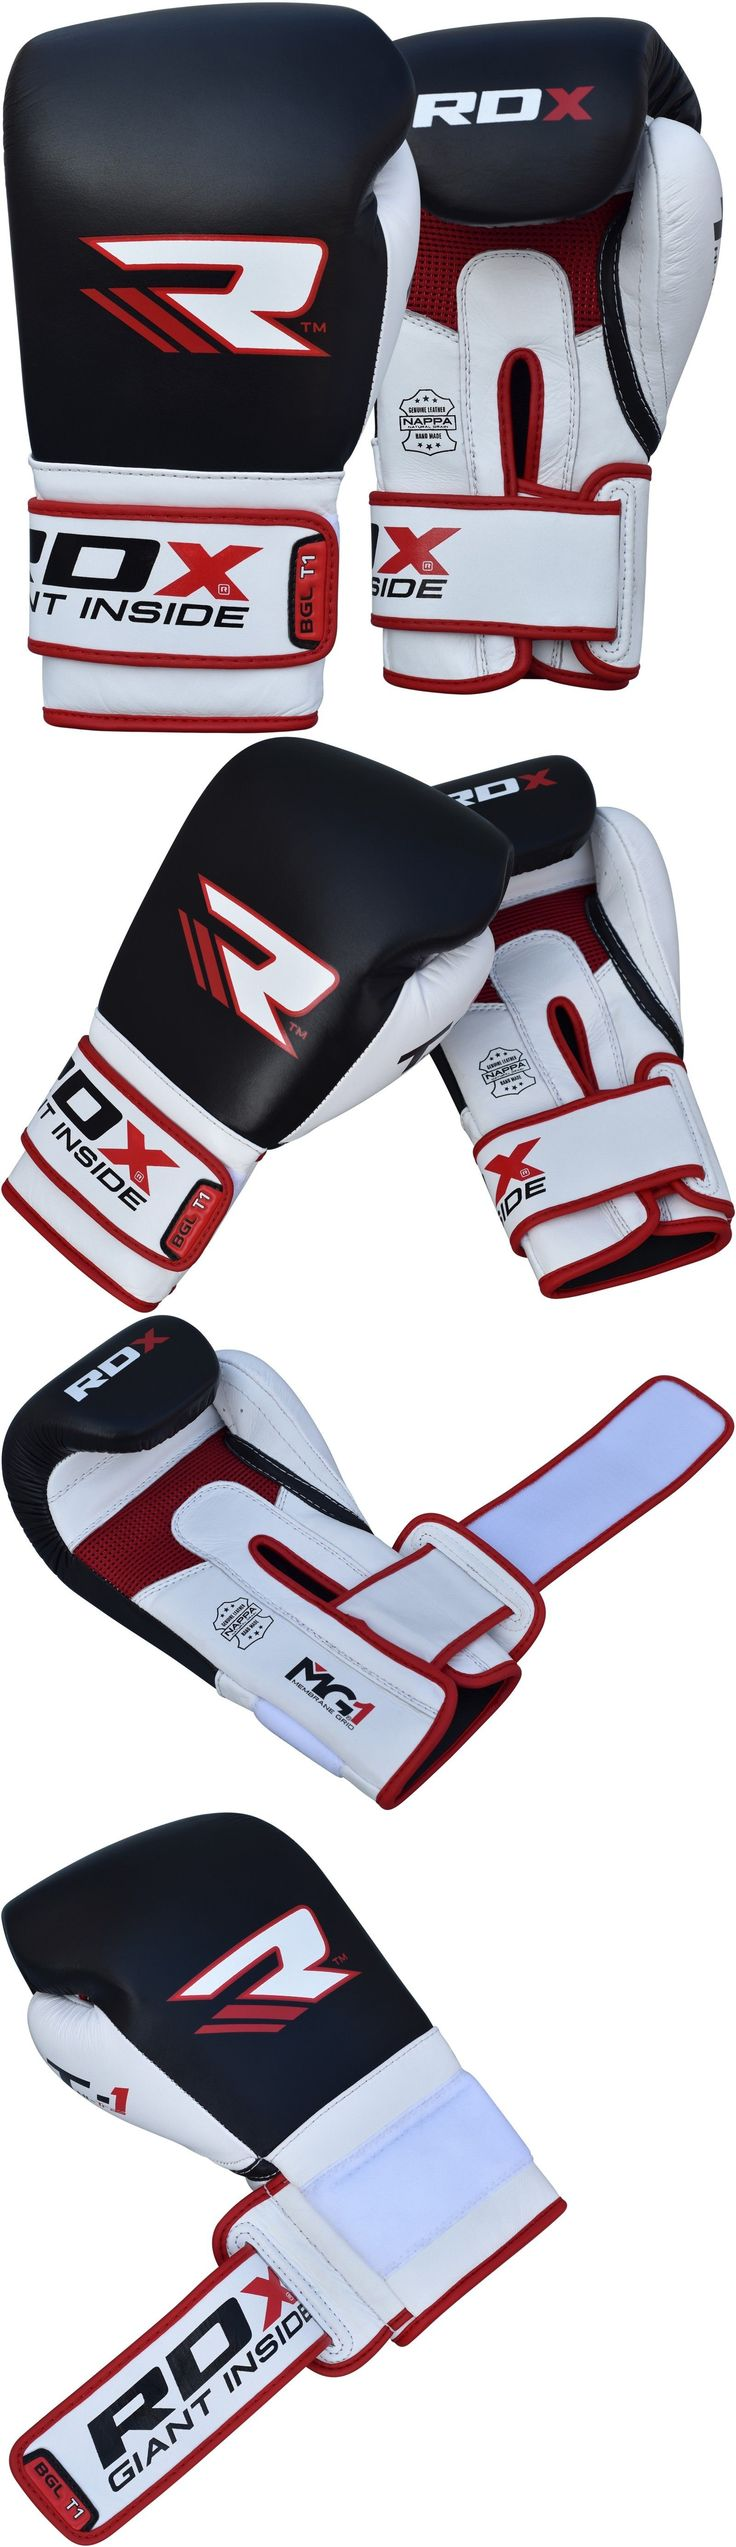 Gloves - Martial Arts 97042: Rdx Boxing Gloves Leather Training Muay Thay Sparring Glove Black BUY IT NOW ONLY: $58.49